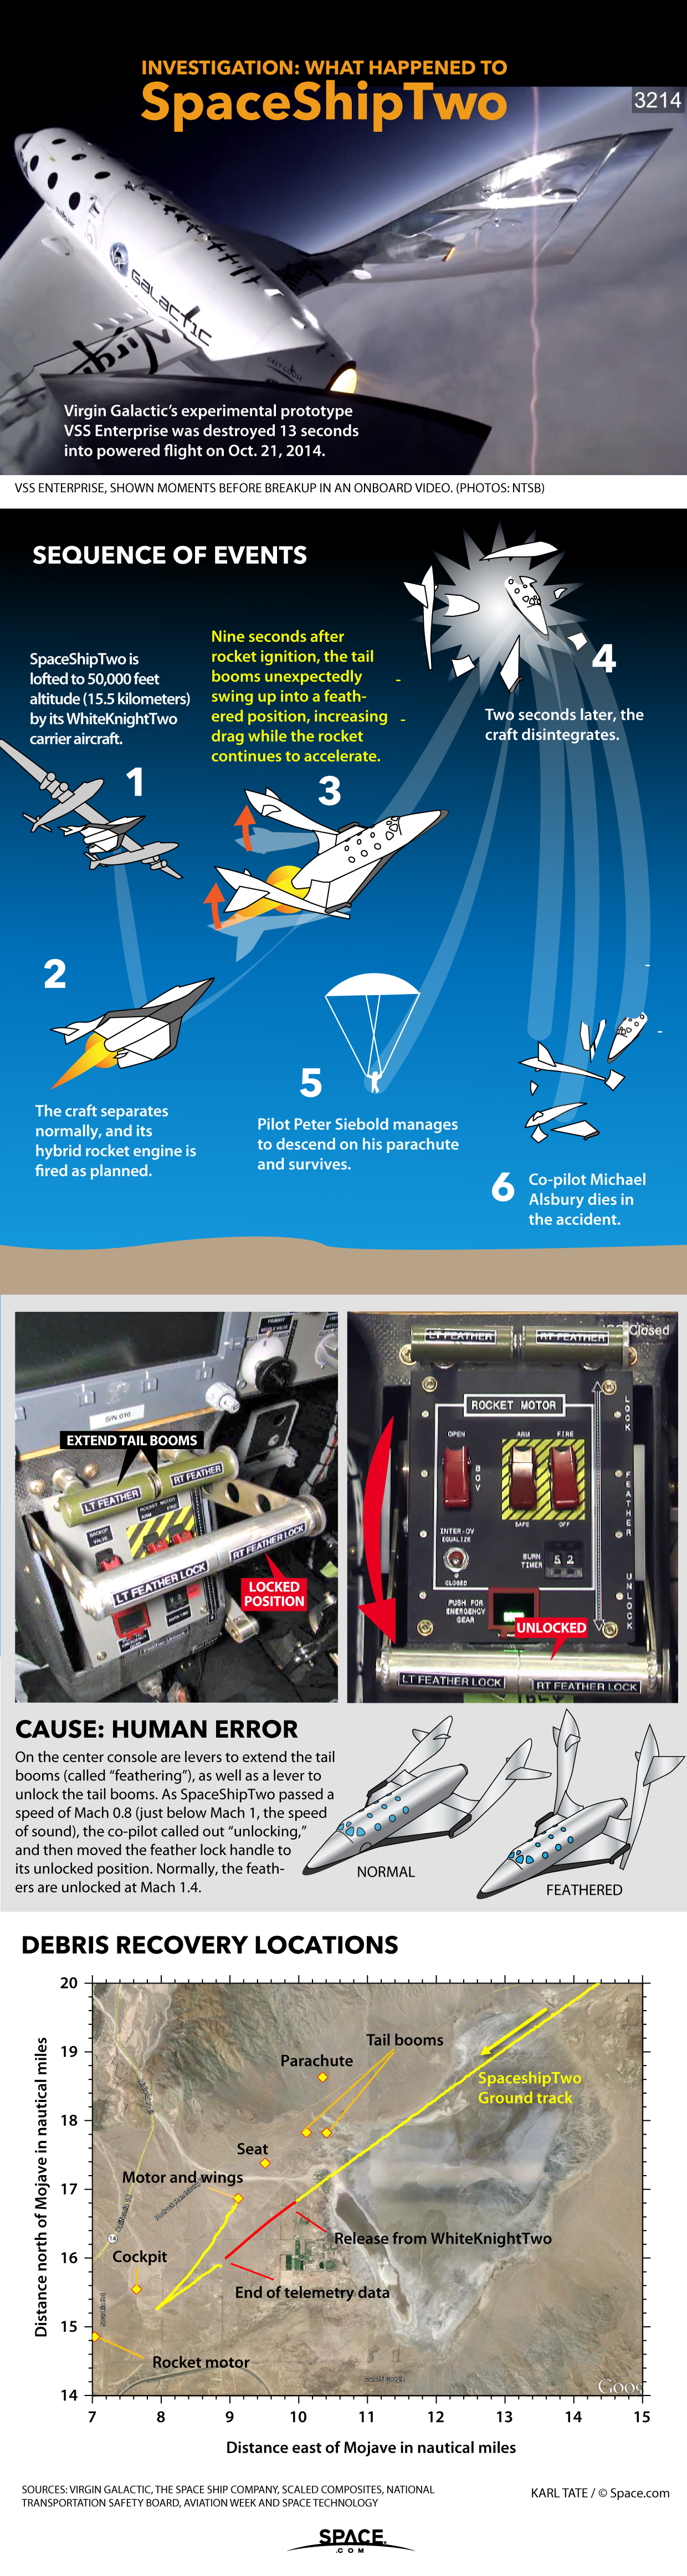 Virgin Galactic's SpaceShipTwo Accident Investigation Explained (Infographic)